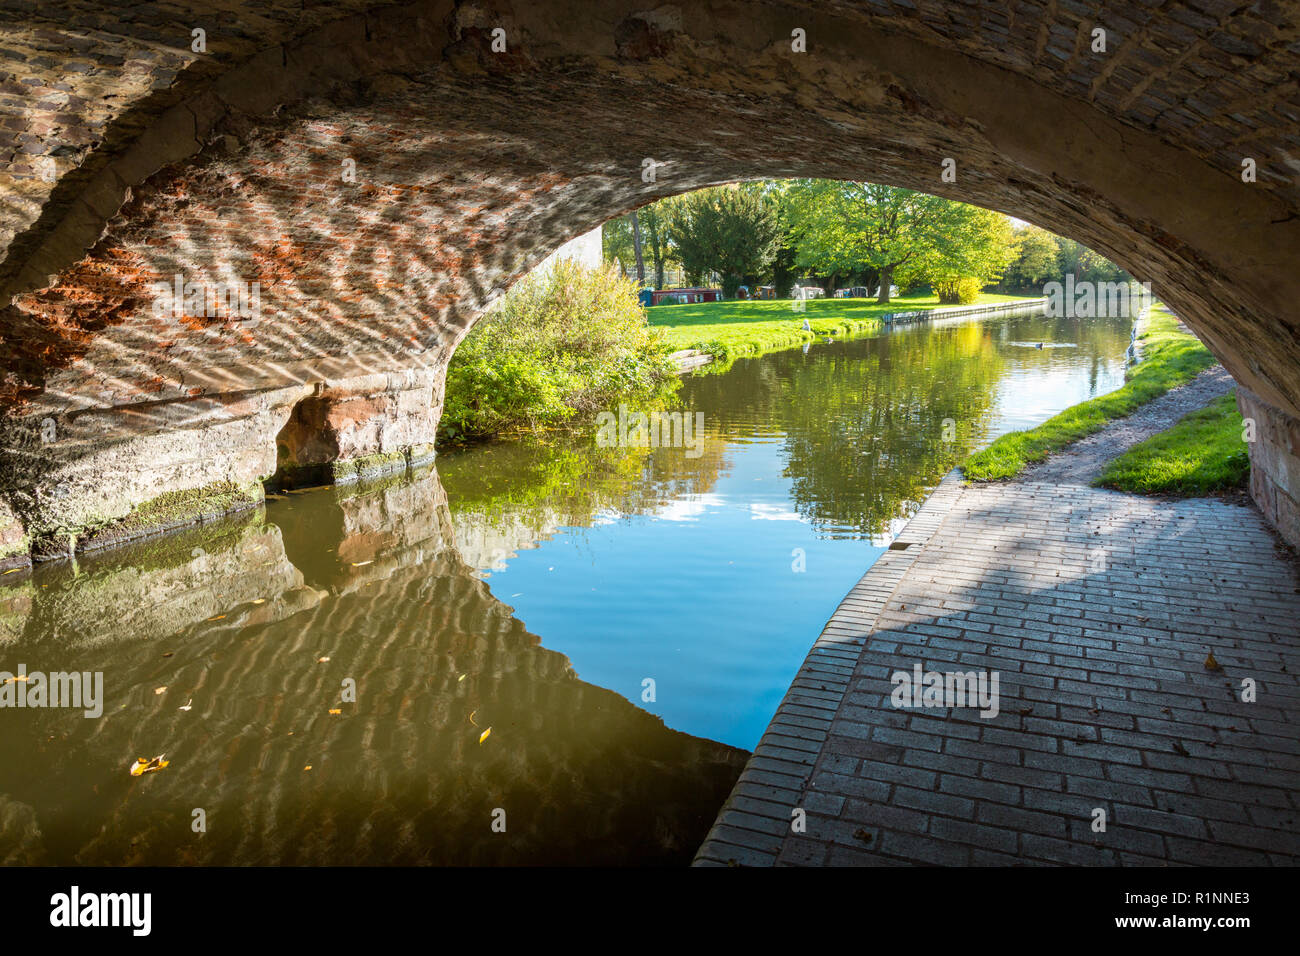 Canal towpath and bridge, autumn, late summer, Staffordshire and Worcestershire canal, UK, near wolverhampton - Stock Image